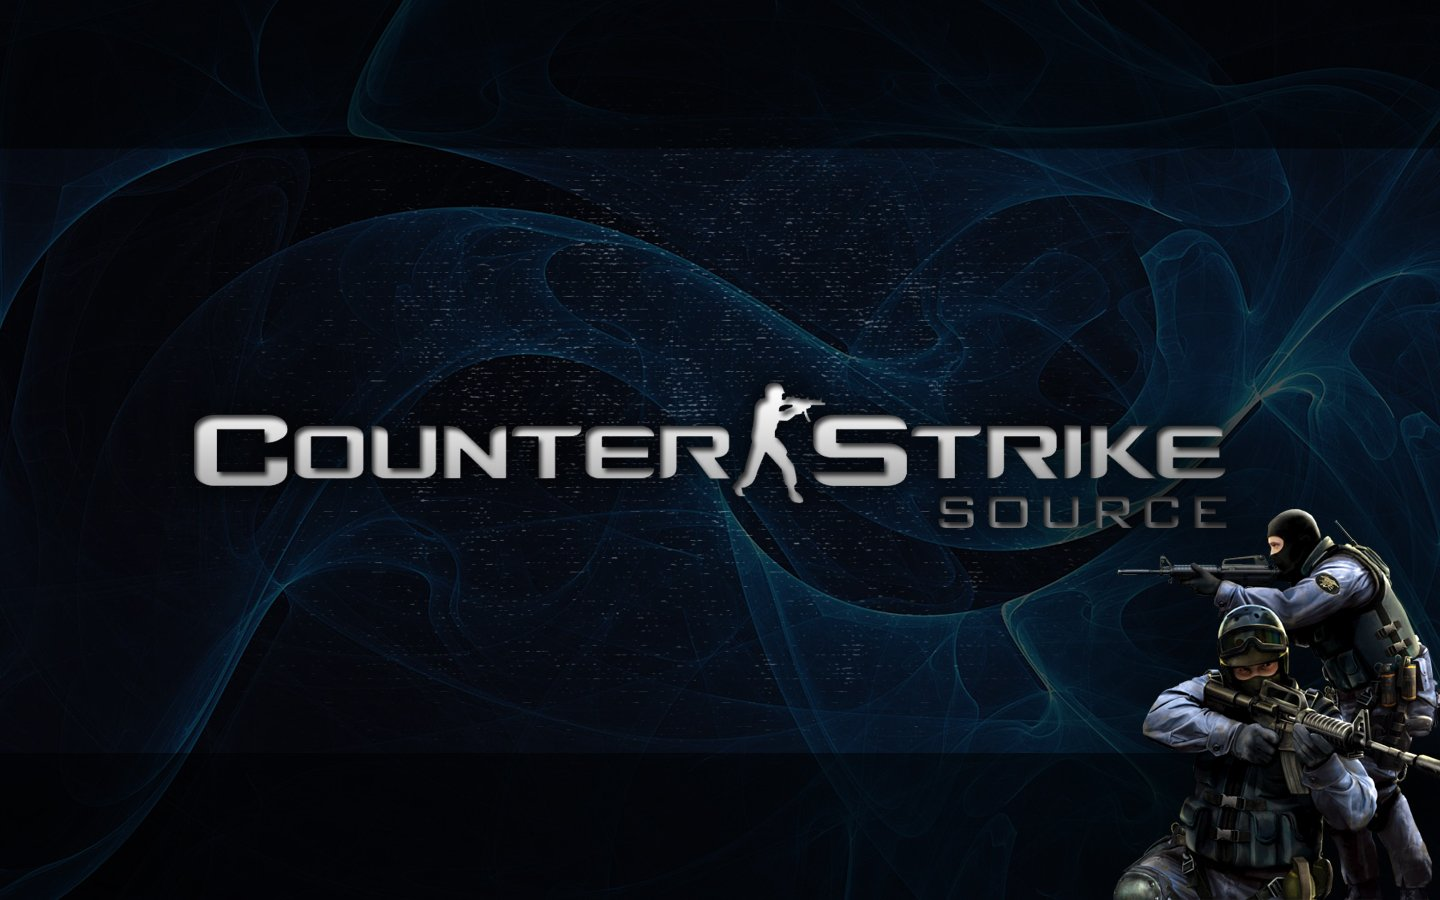 Counter Strike Source Wallpaper by pvlimota 1440x900